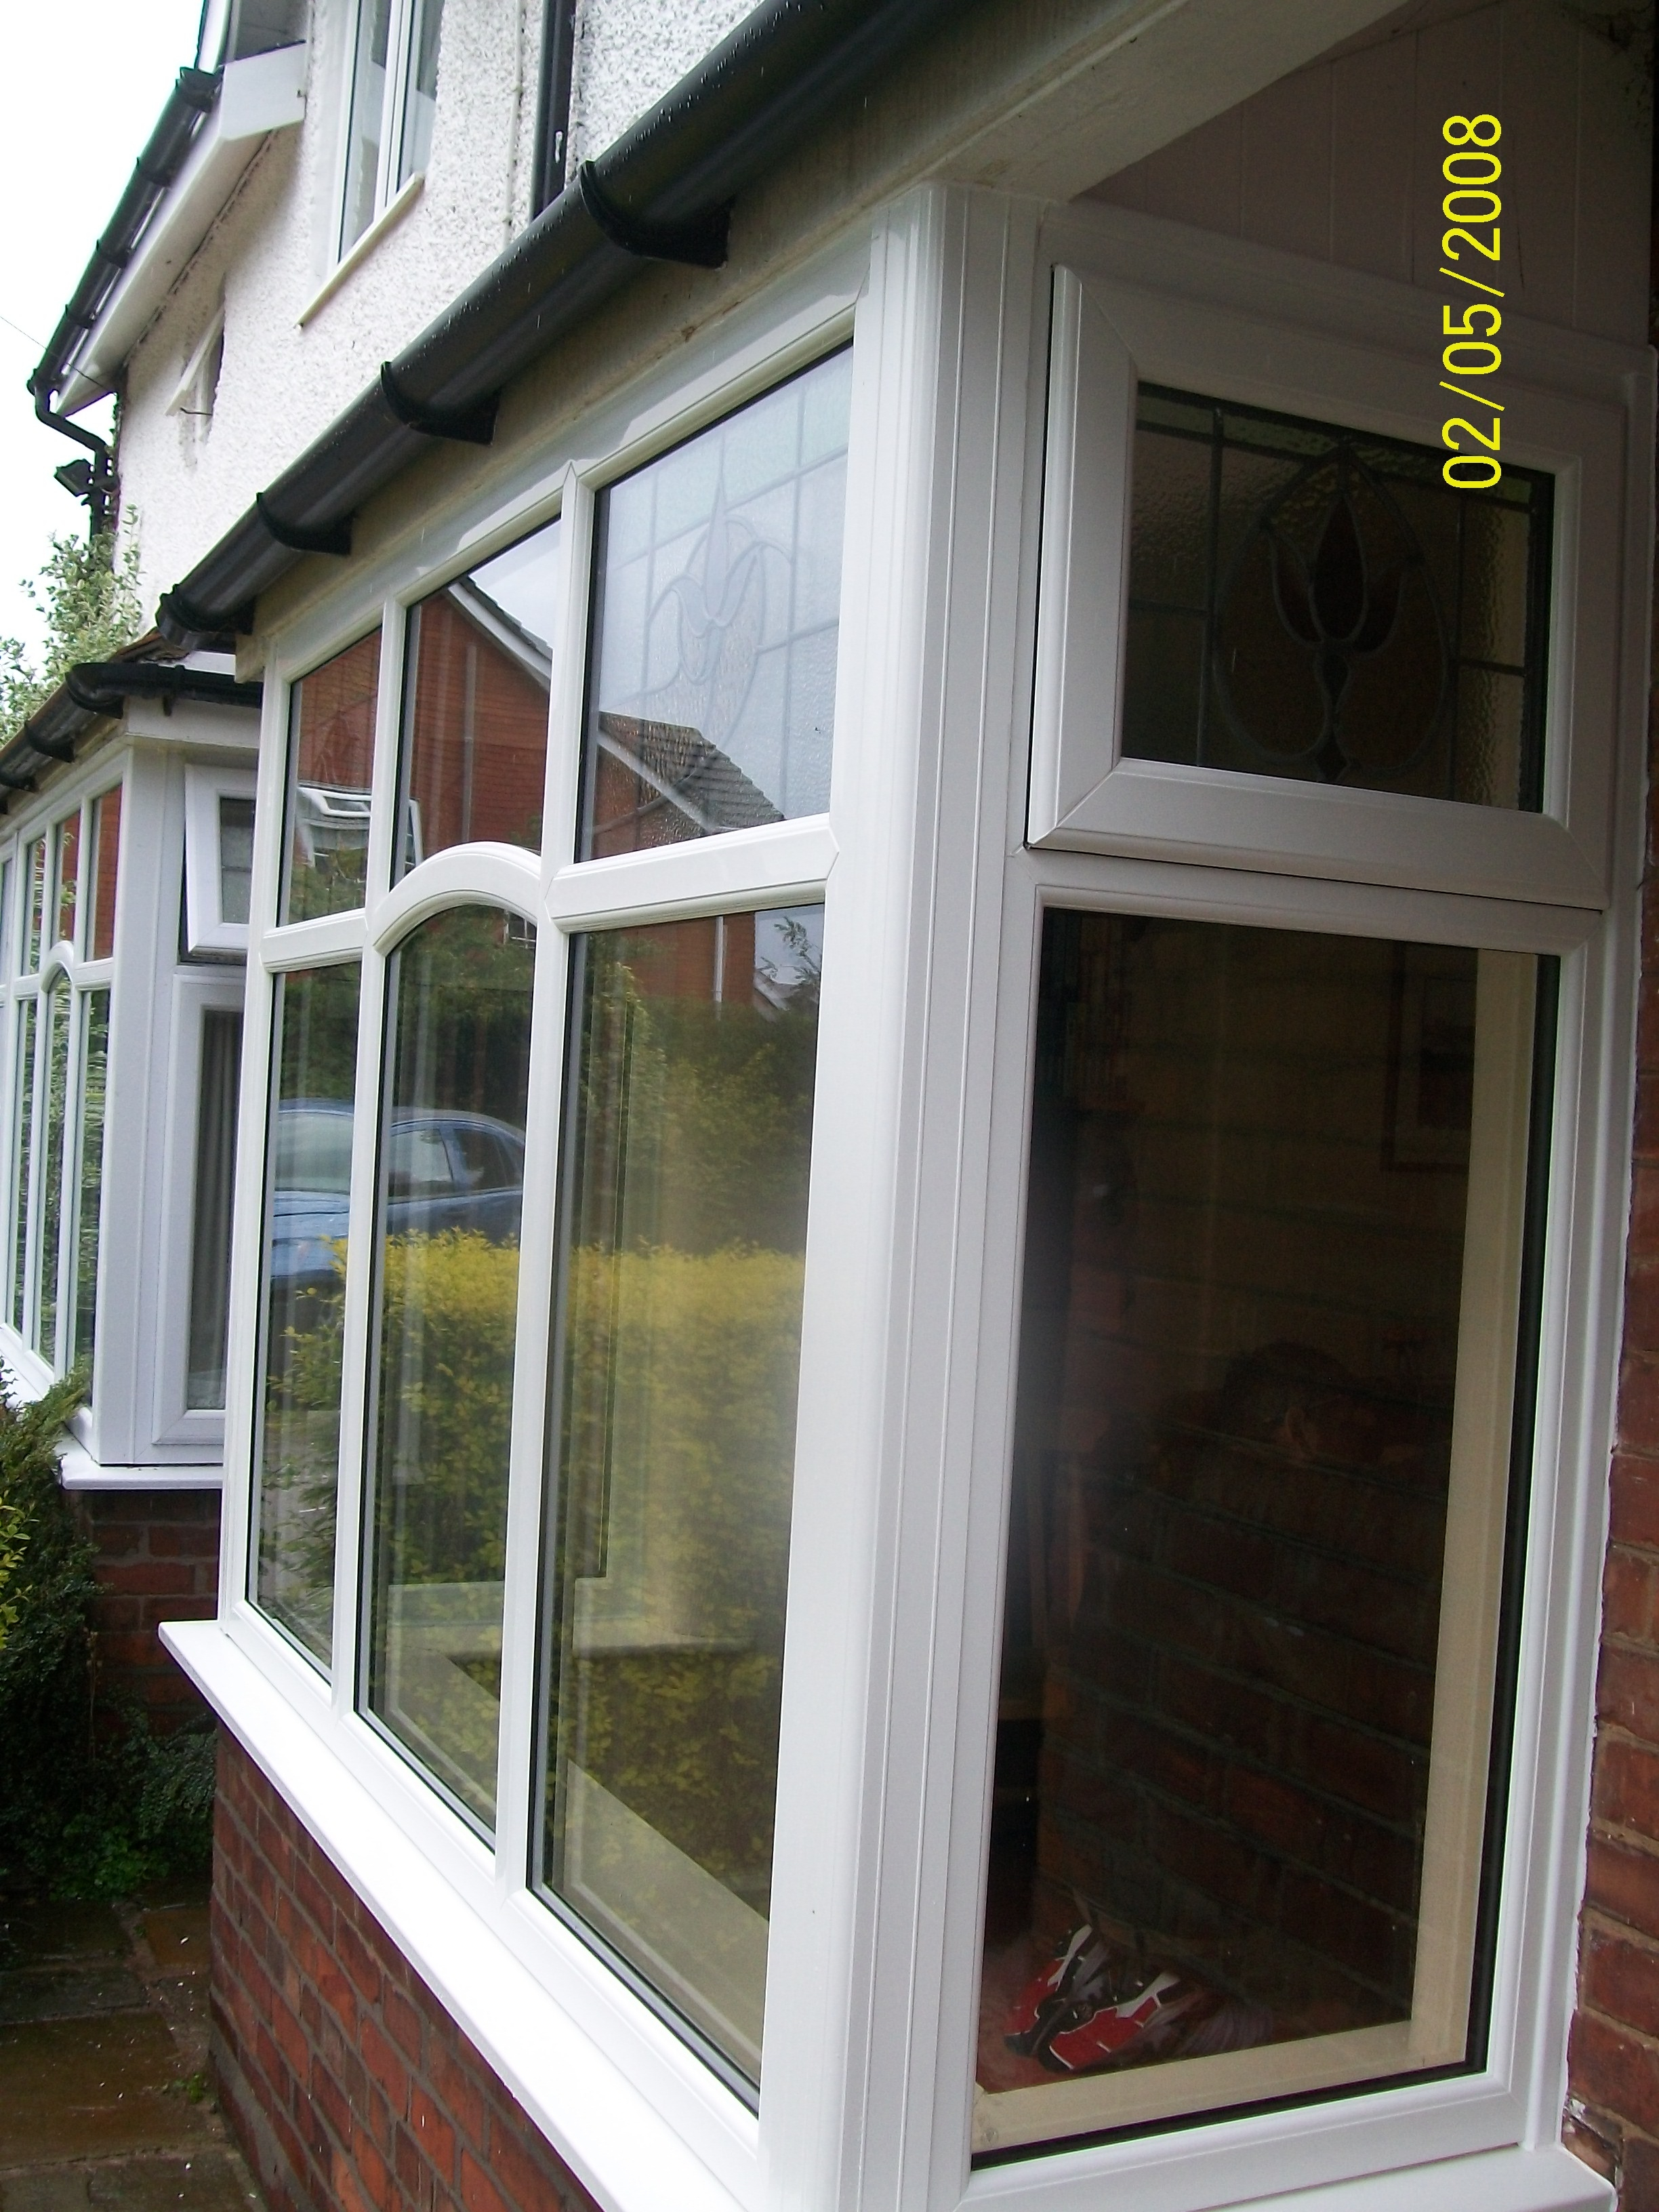 1930s style upvc windows with original leaded lights